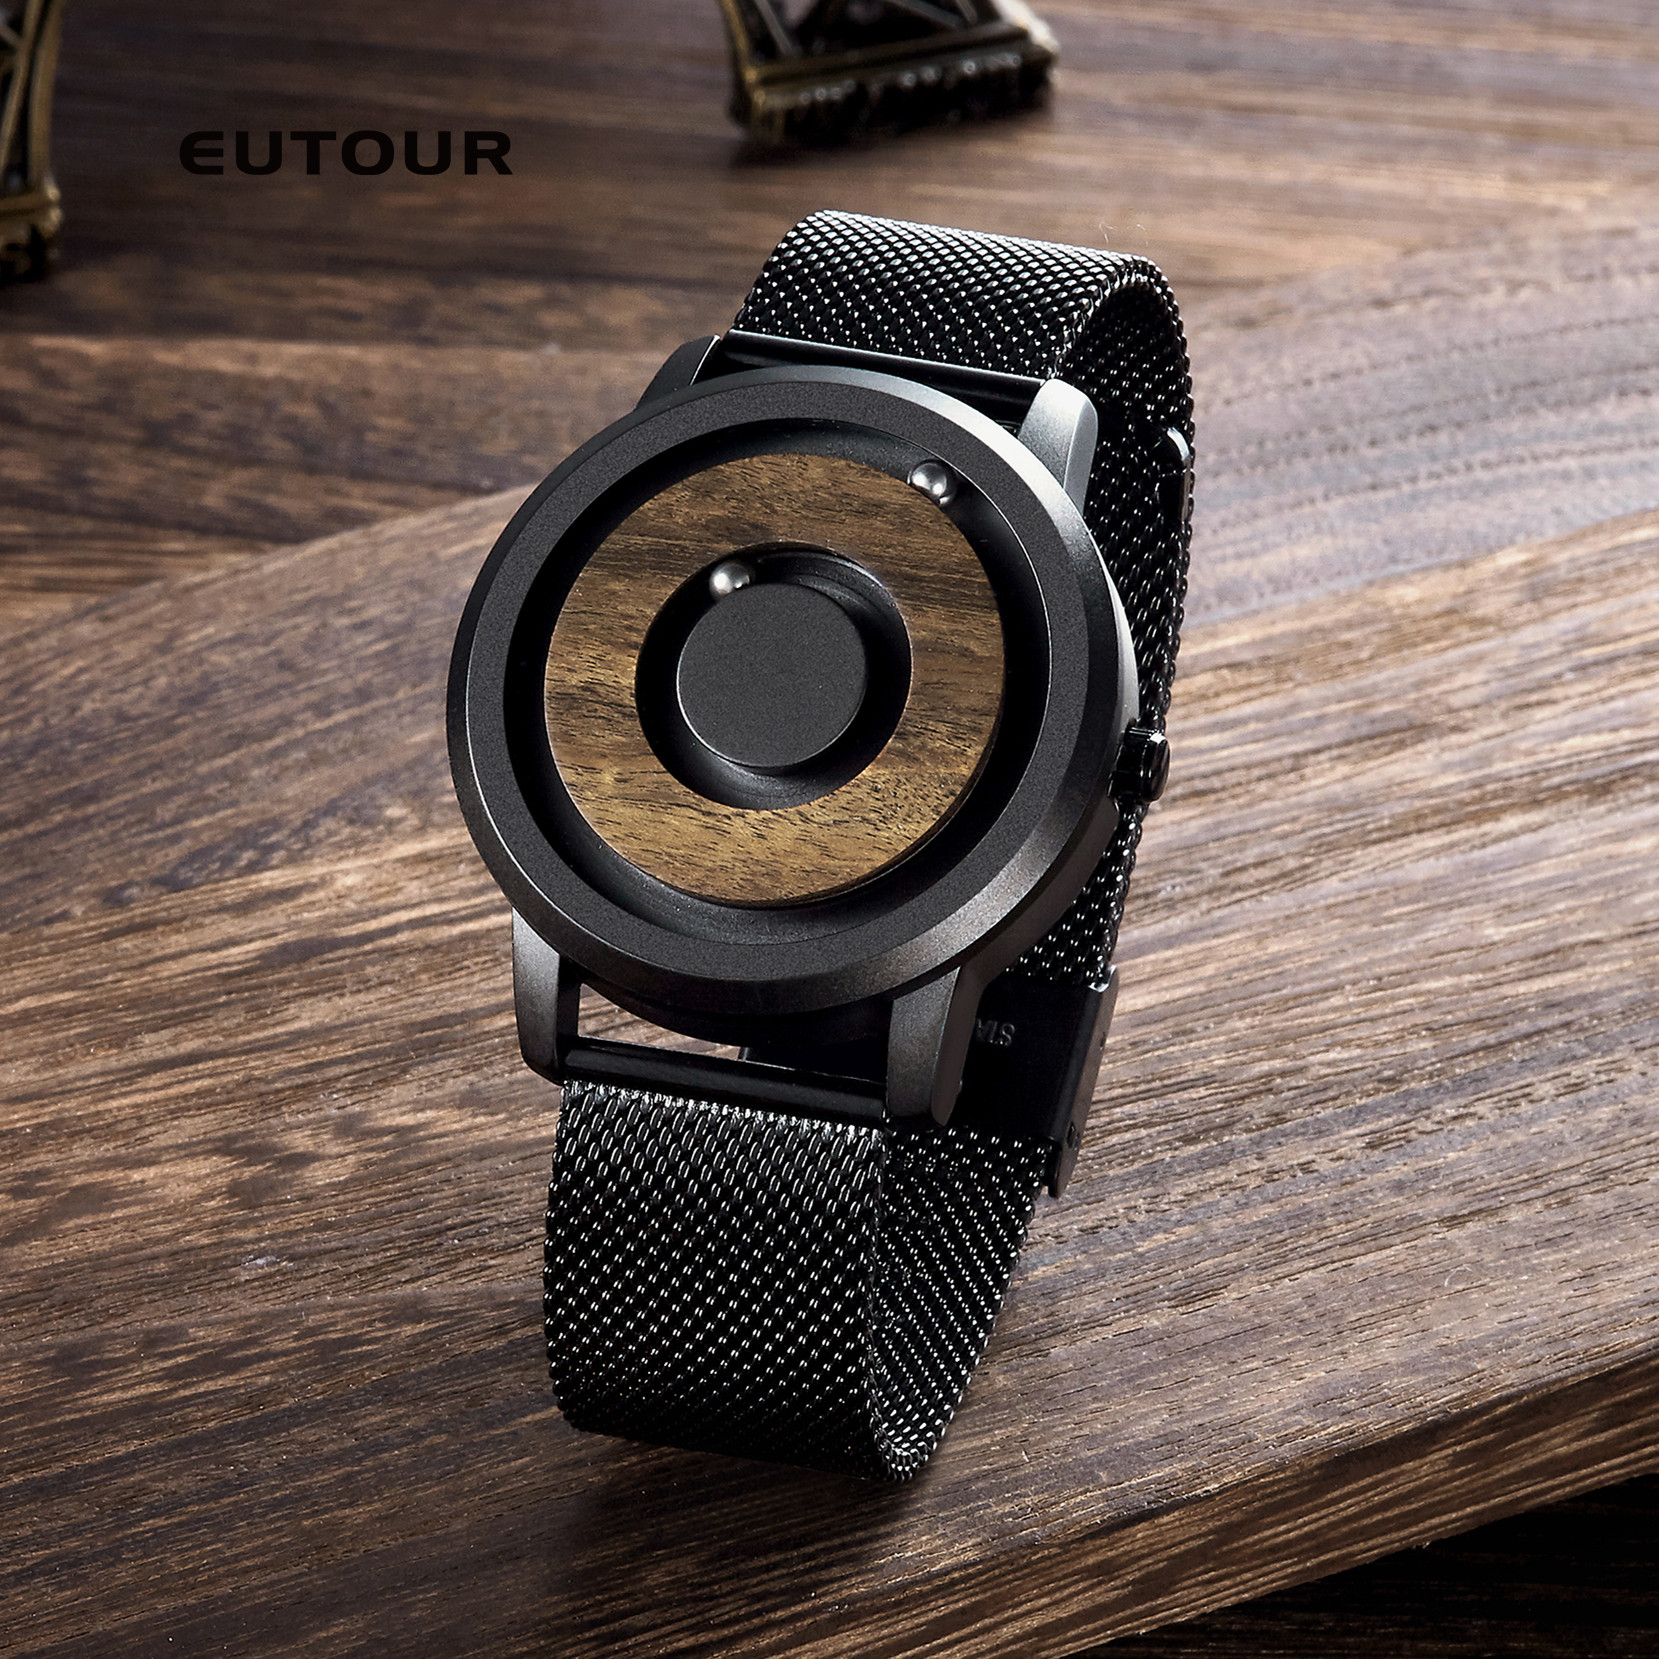 EUTOUR minimalist Novelty Wood Dial Scaleless Magnetic Watch Belt Natural Forest Fashion Mens Couple WatchEUTOUR minimalist Novelty Wood Dial Scaleless Magnetic Watch Belt Natural Forest Fashion Mens Couple Watch